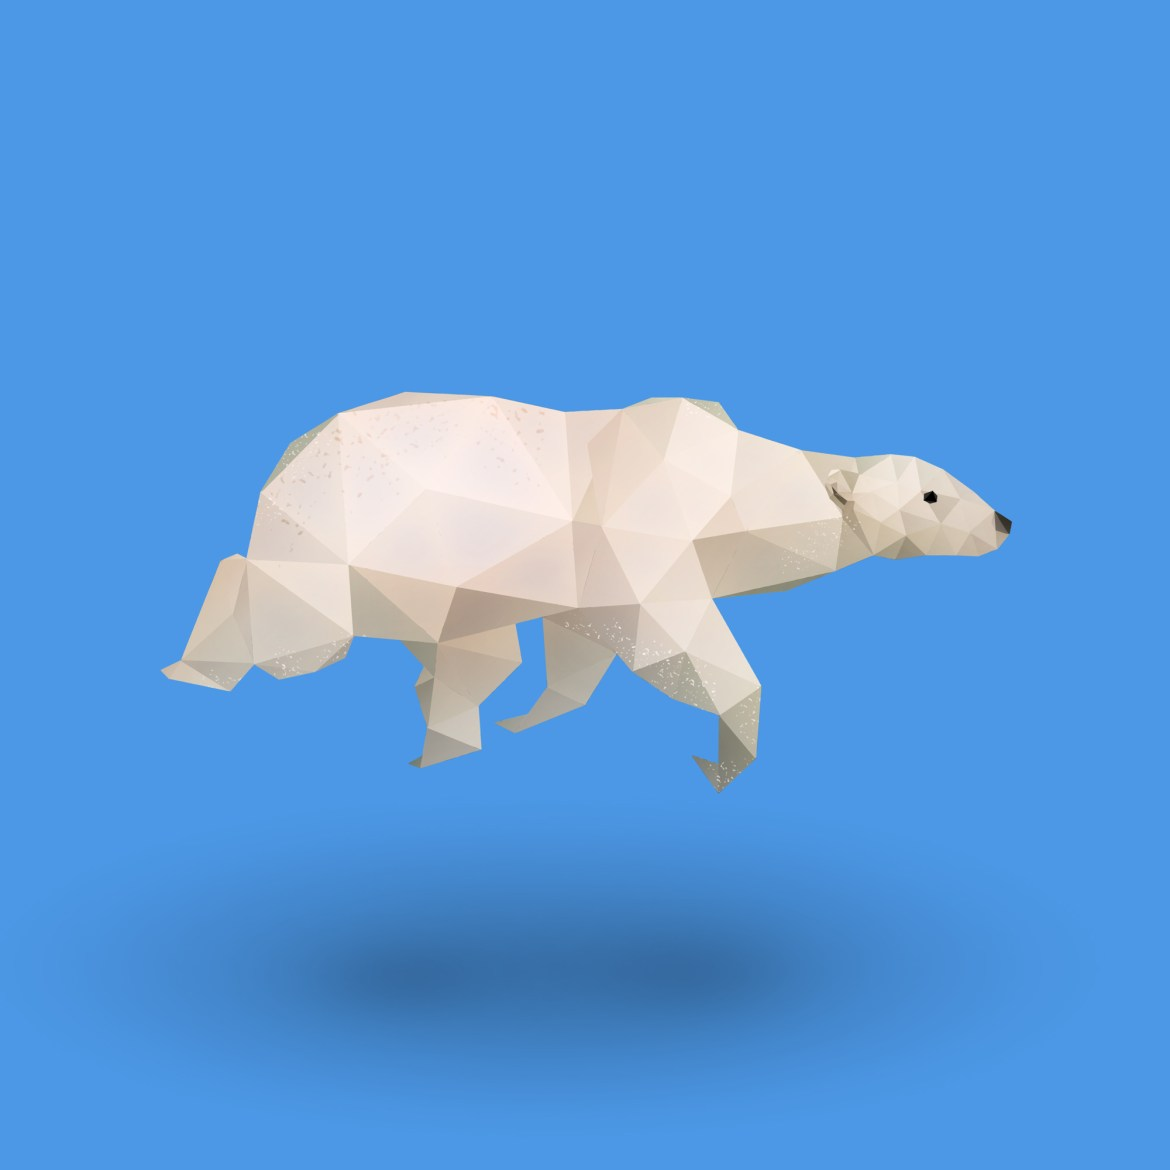 diana-dachille-polar-bear-dianas-animals